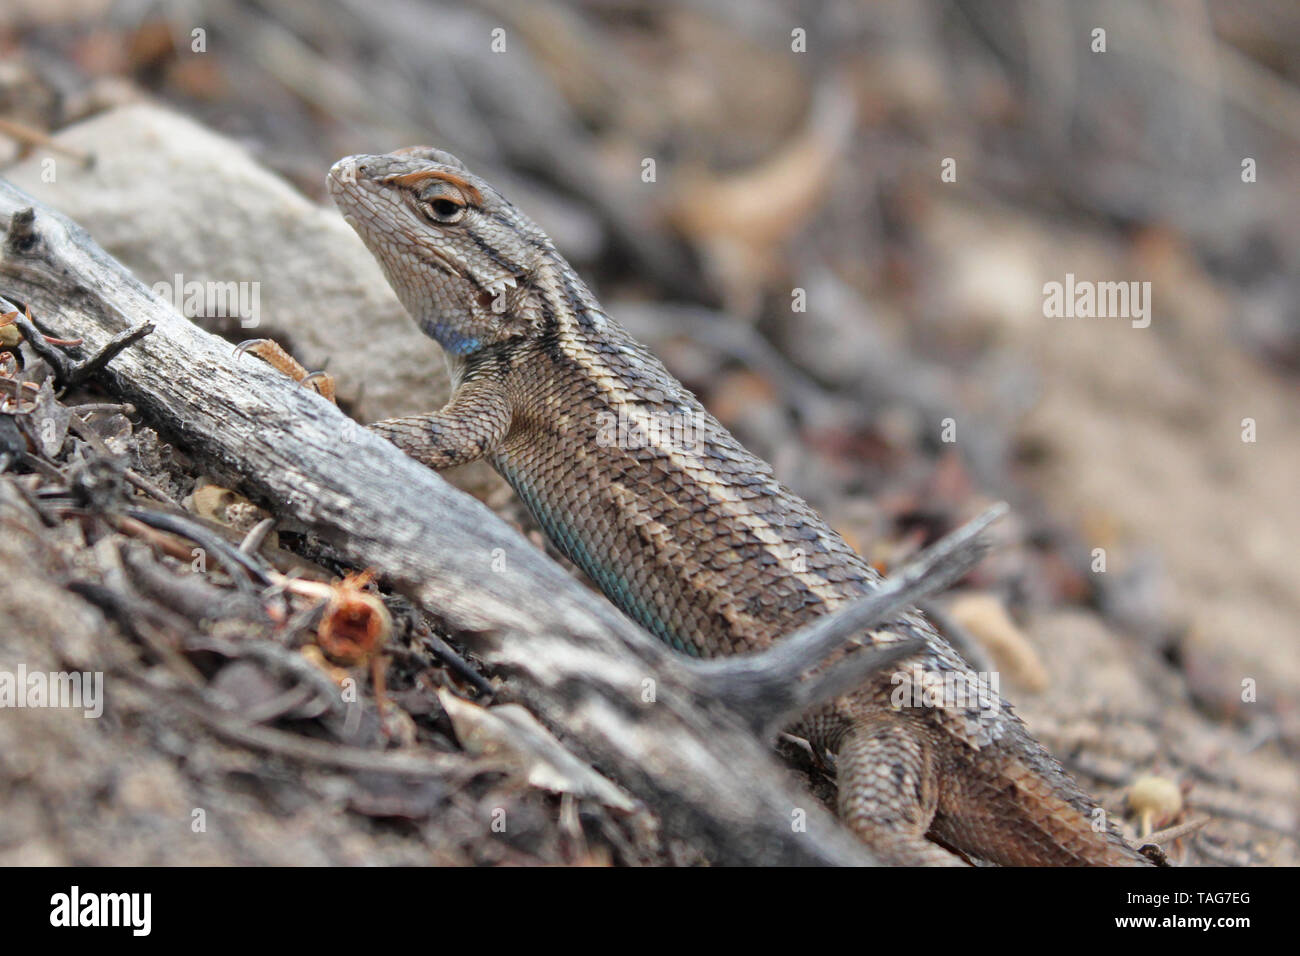 Plateau Fence Lizard Stock Photo